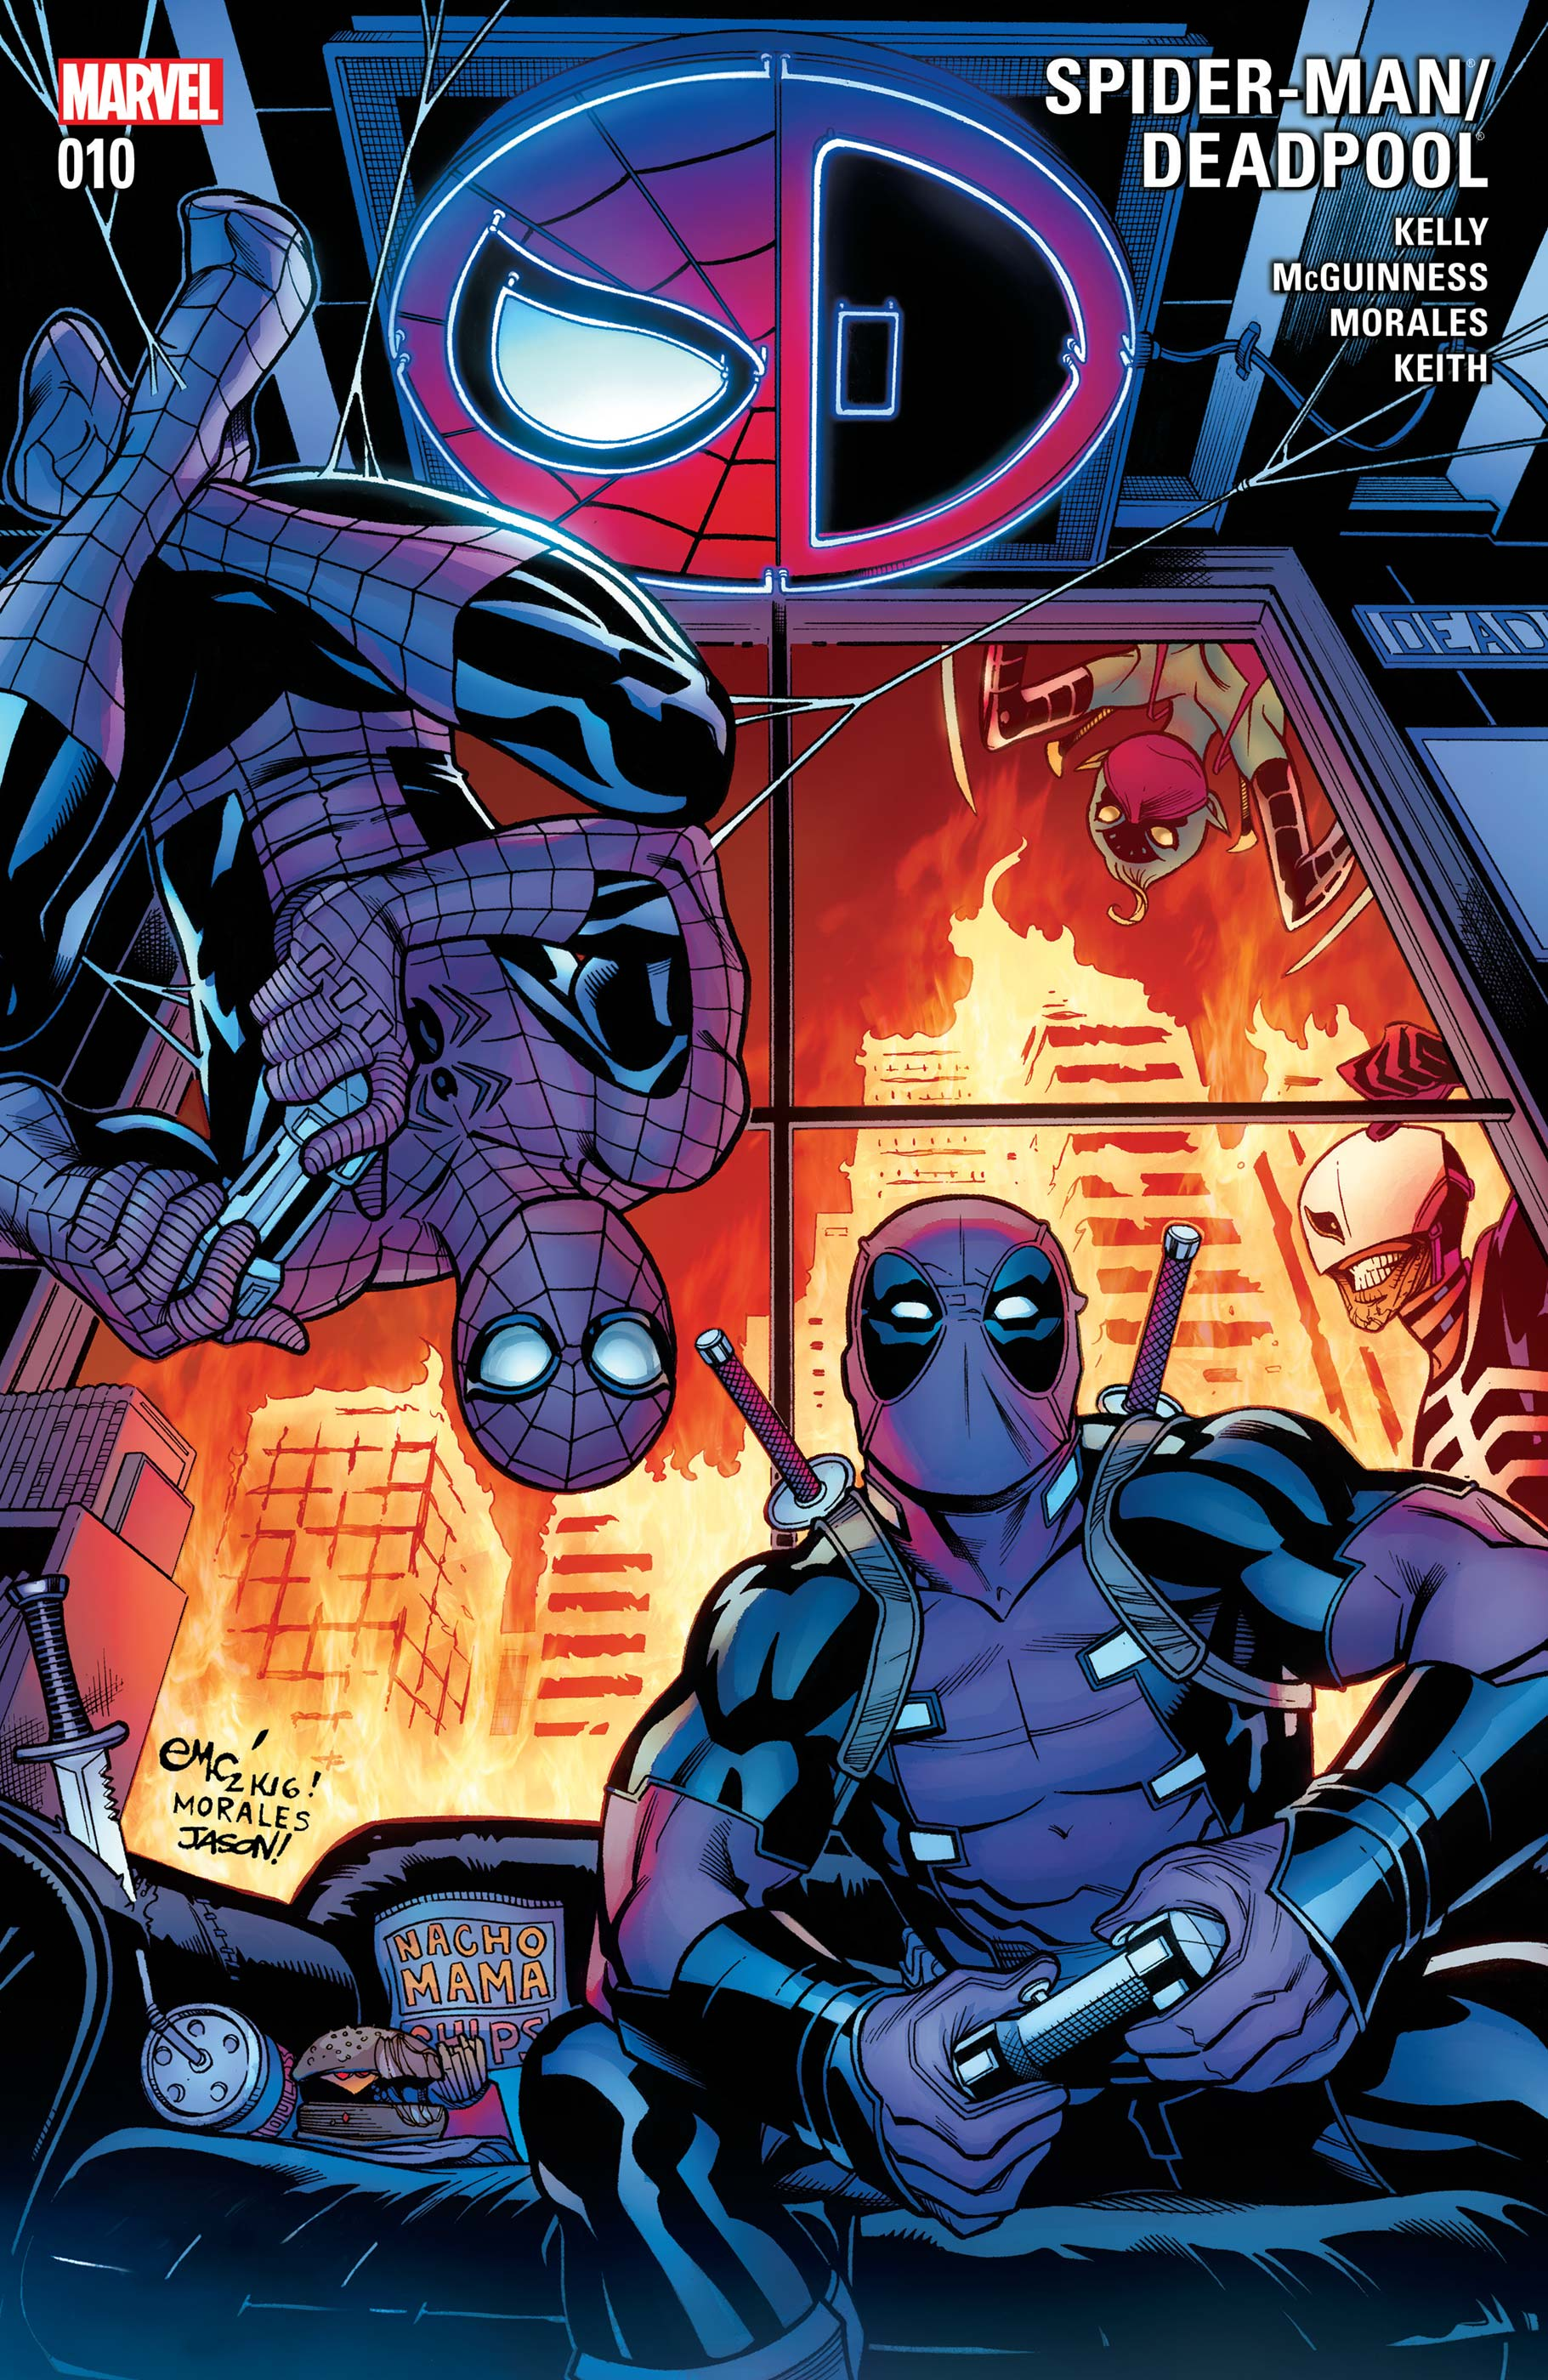 Spider-Man/Deadpool (2016) #10